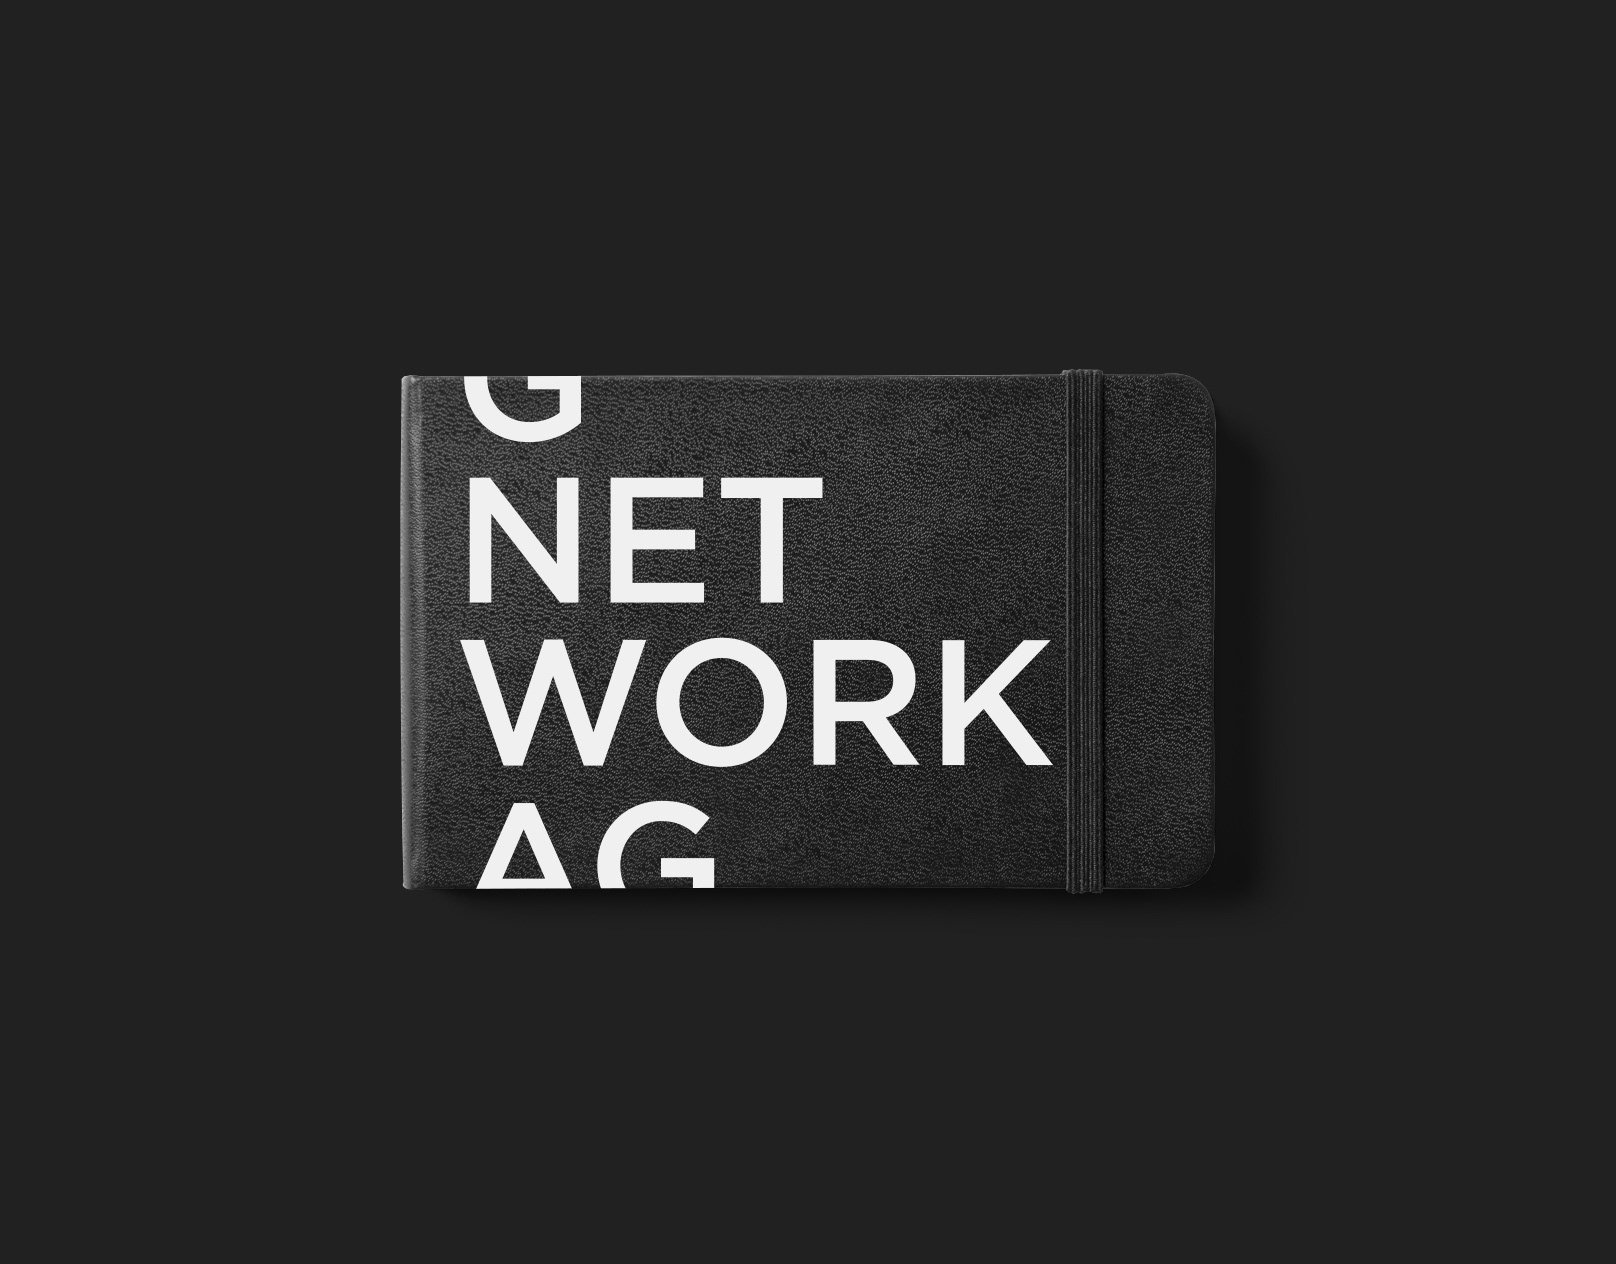 Brand Architecture/ Identity, G-Network AG